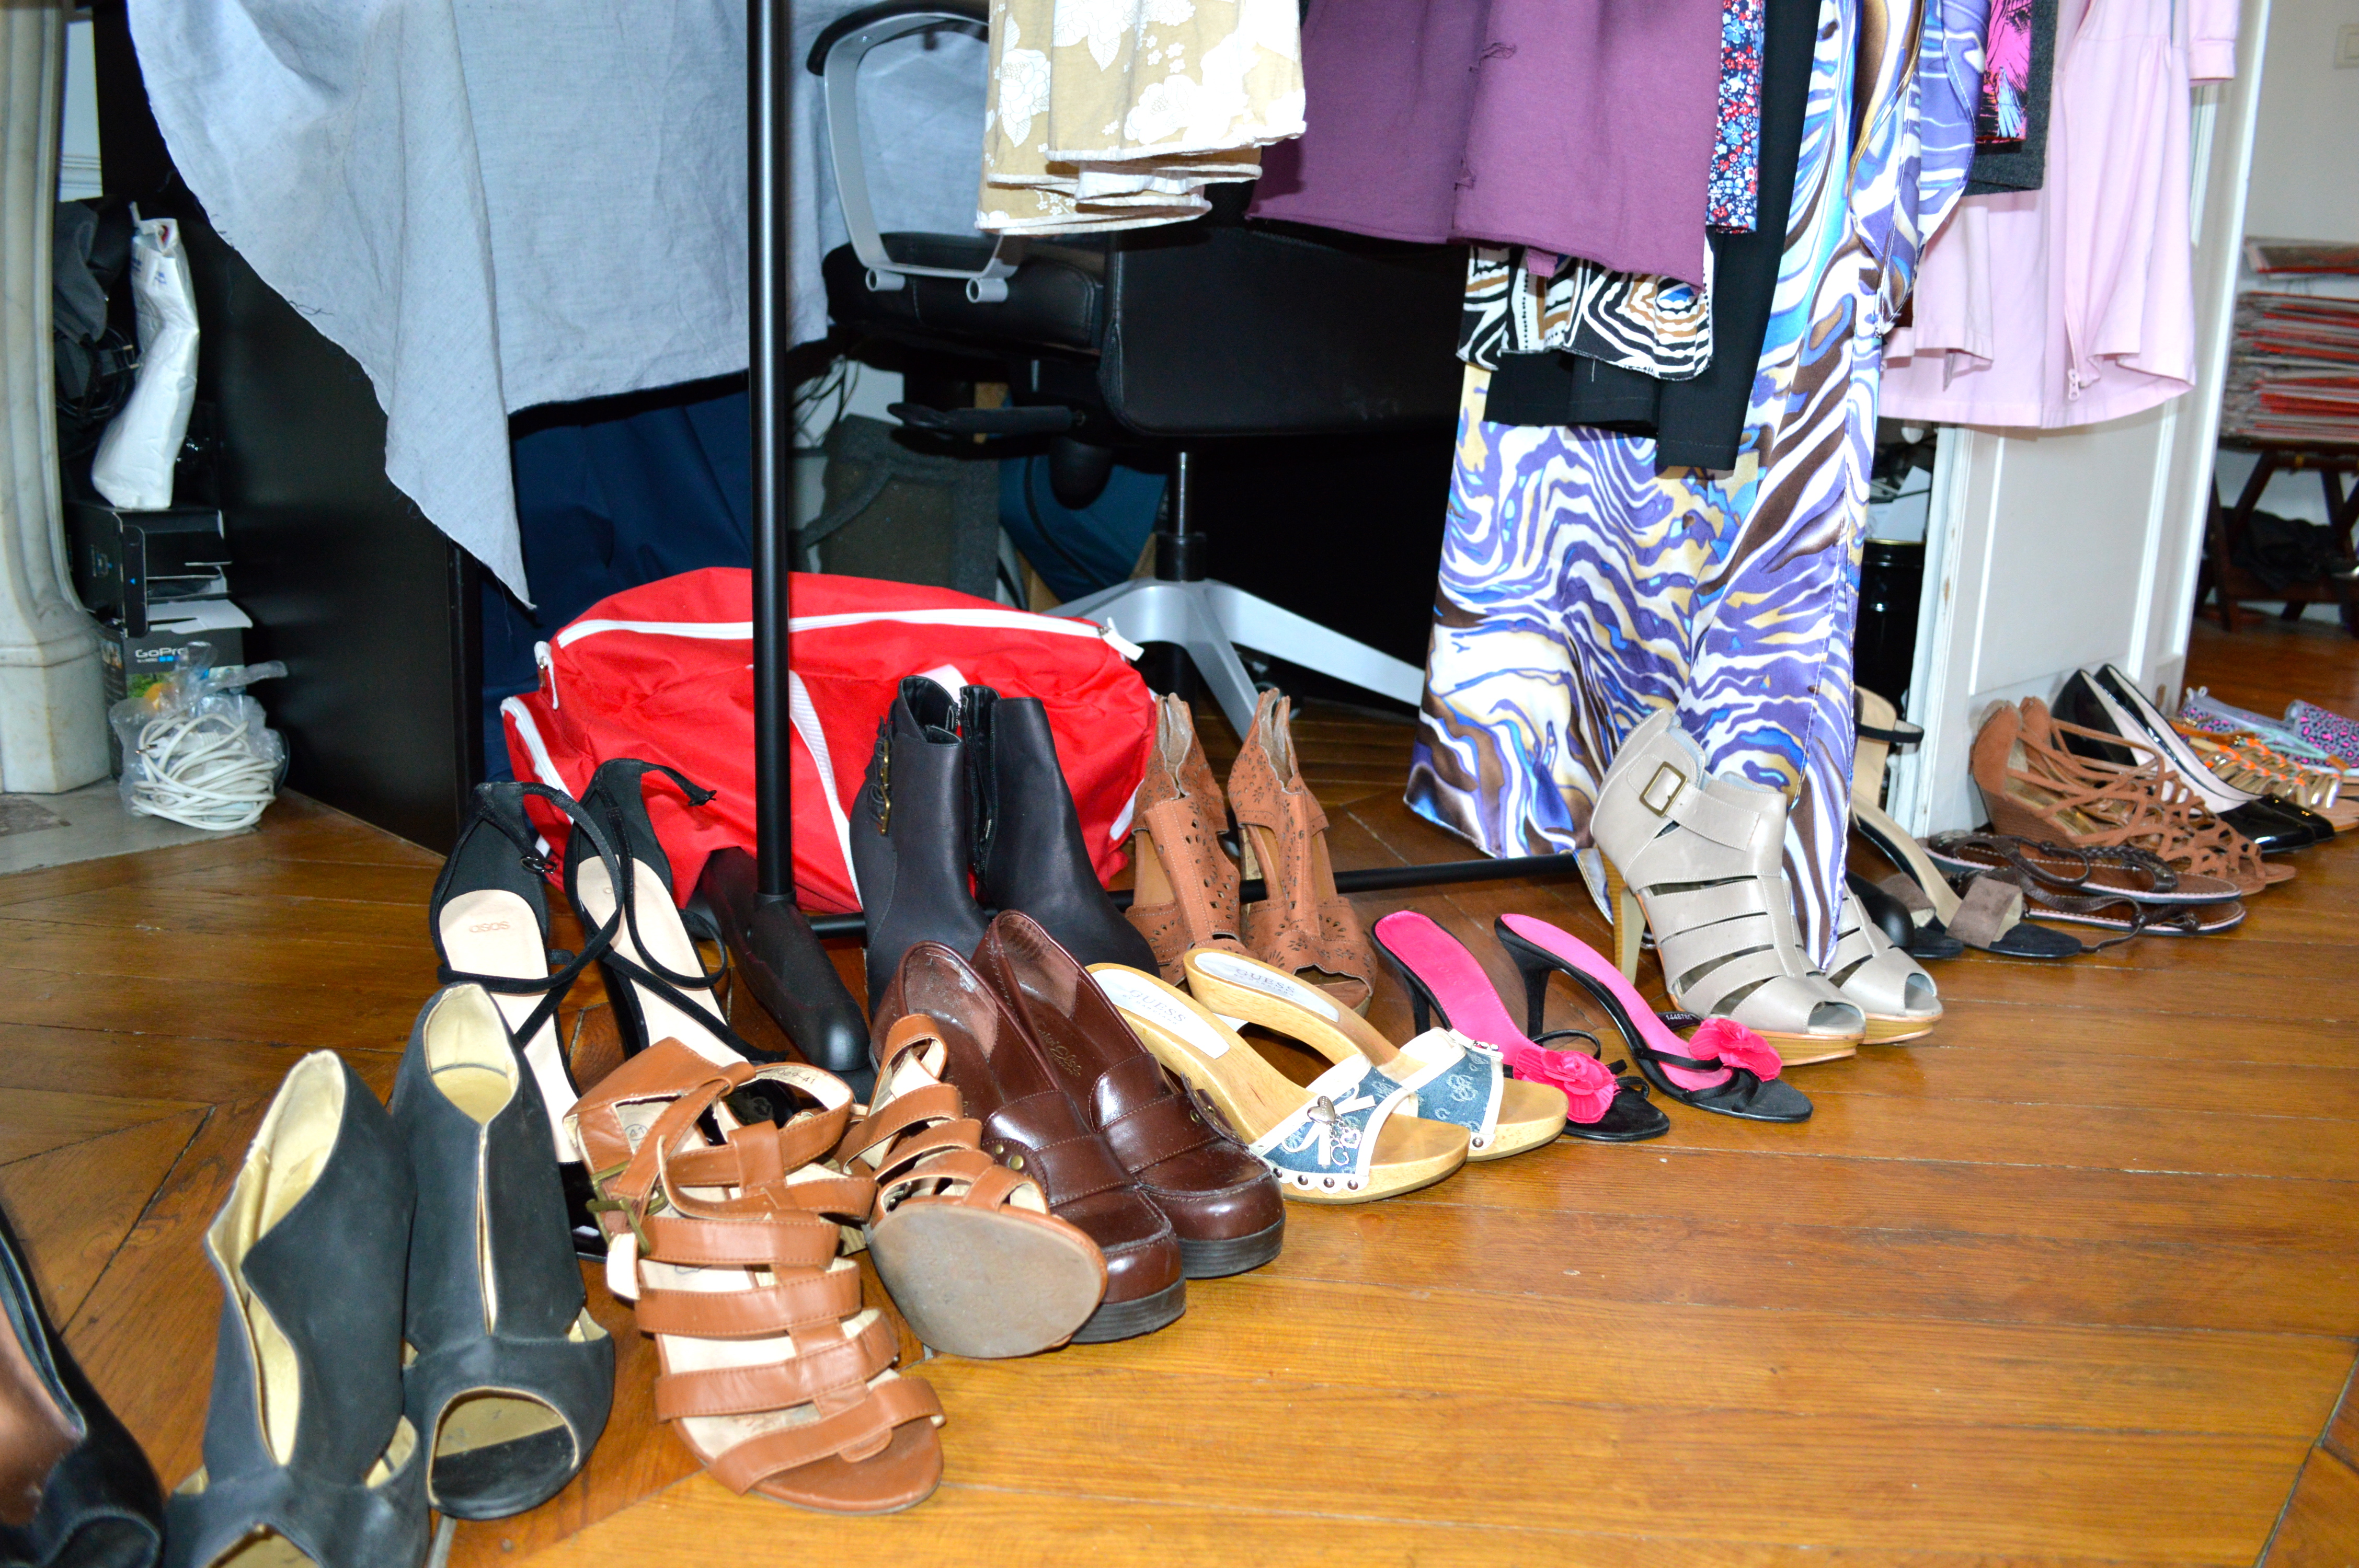 chaussures vide dressing